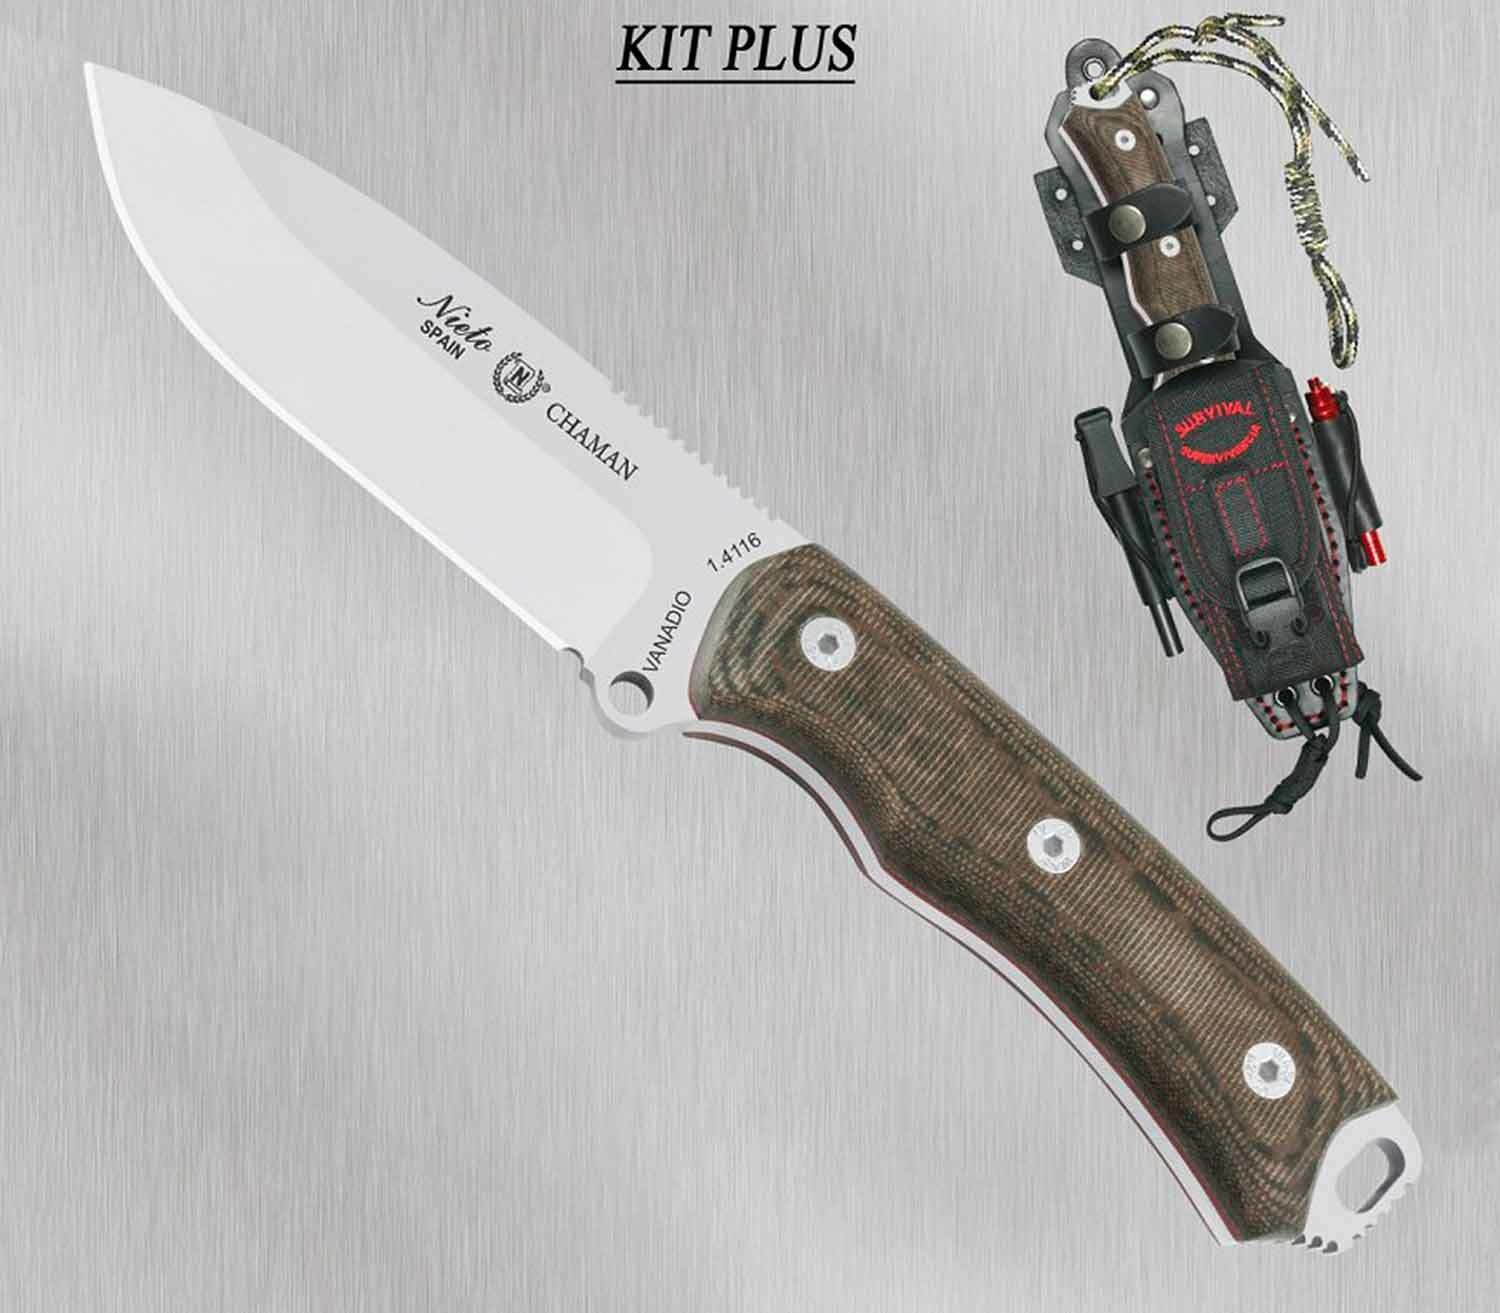 Cuchillo-Nieto-Chaman-Katex-Kit-Plus.jpg